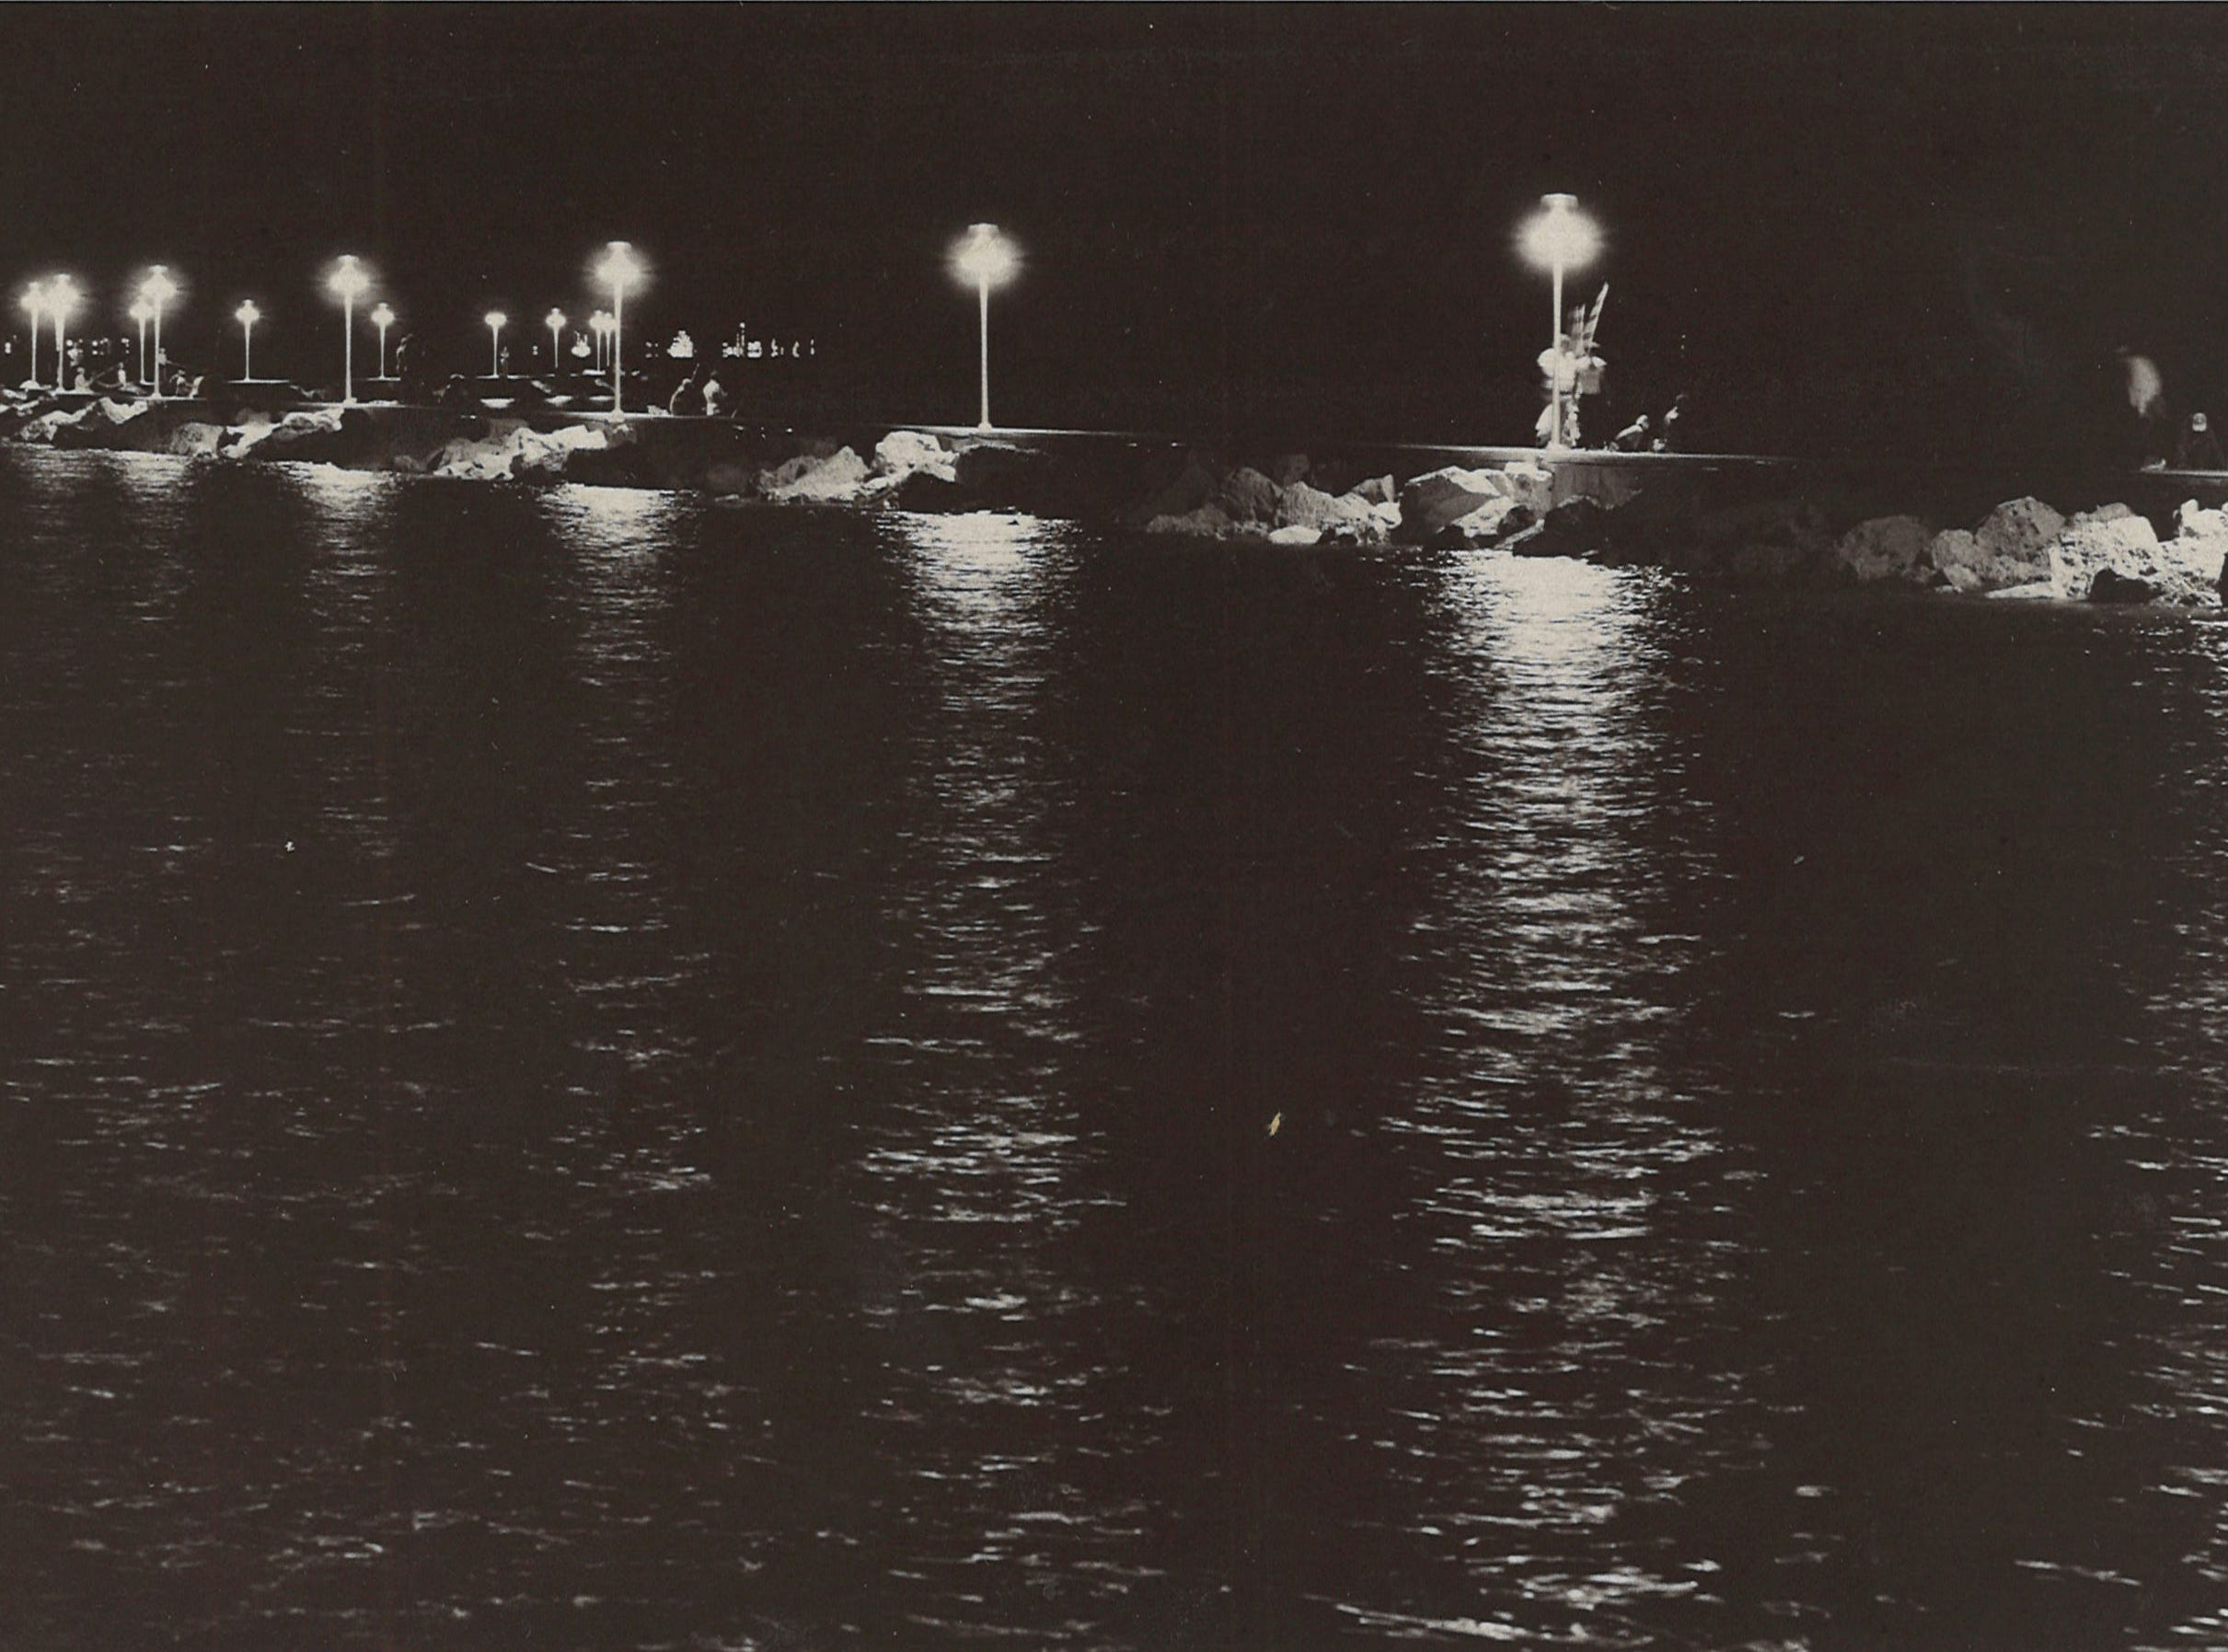 The city installed 17 lights along the breakwater sidewalk at McGee Beach in downtown Corpus Christi in 1975. Fisherman gathered around the lights when this photo was taken the evening of Sept. 23, 1975.